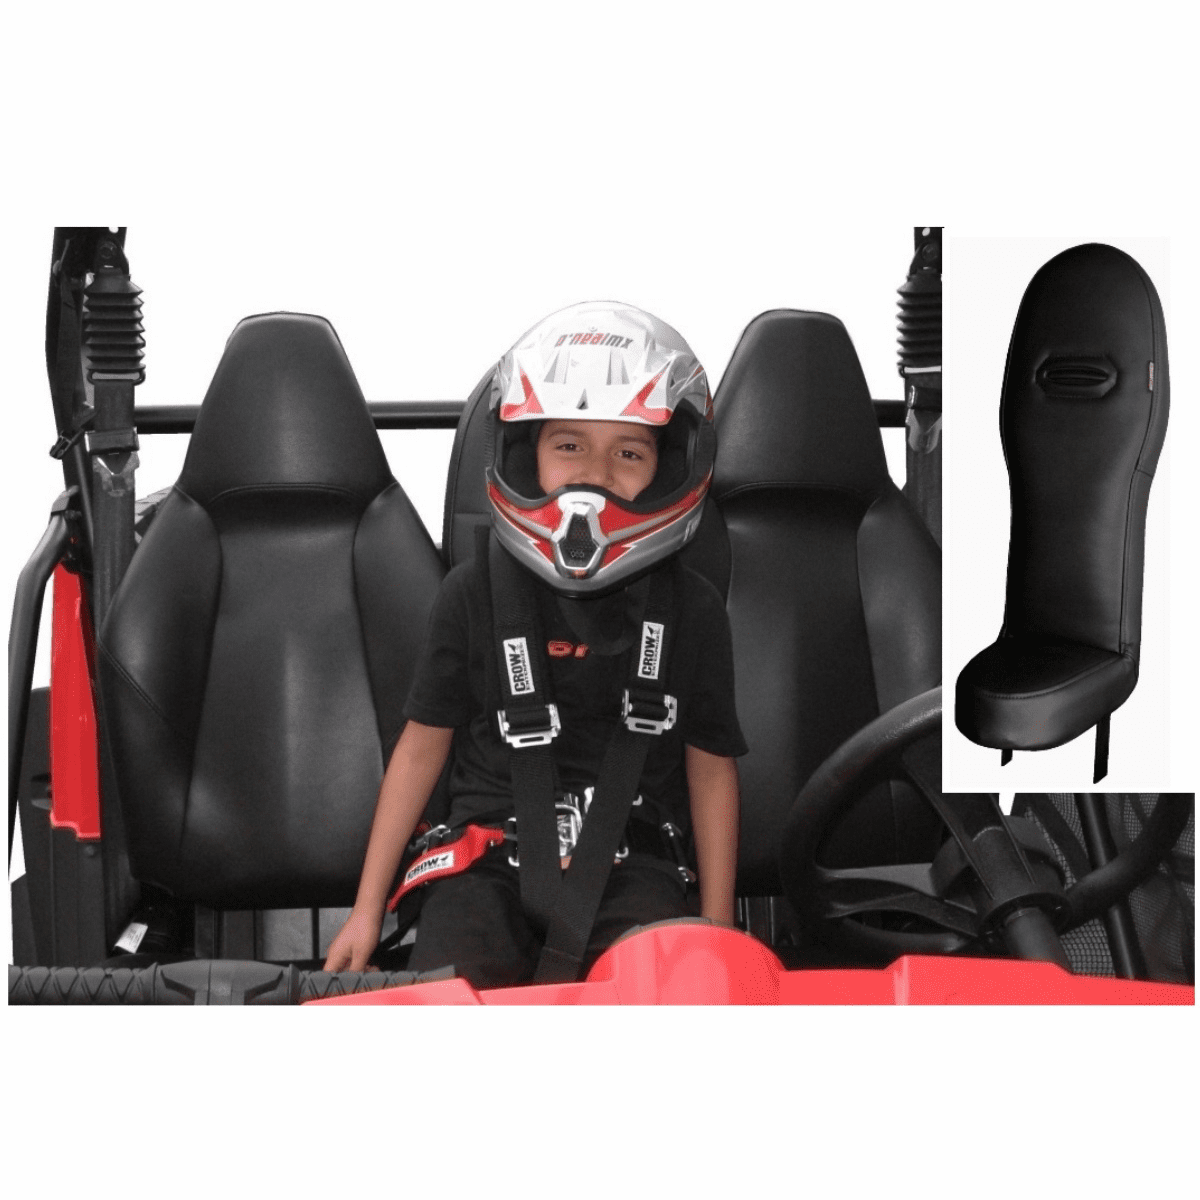 2008-2014 RZR Center Seat - All Black *SOLD OUT*